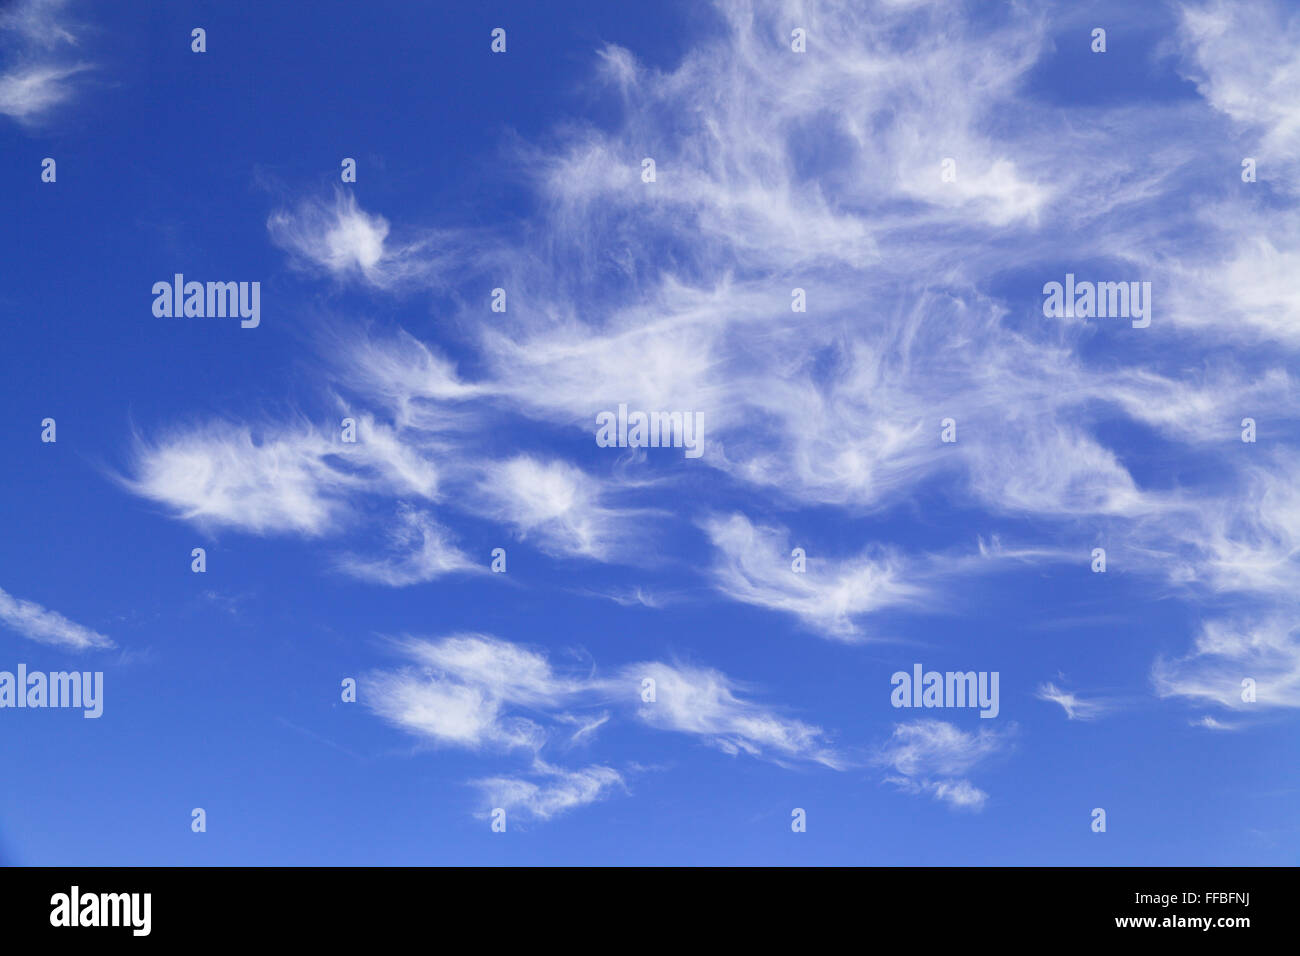 Wispy clouds in a blue sky - Stock Image